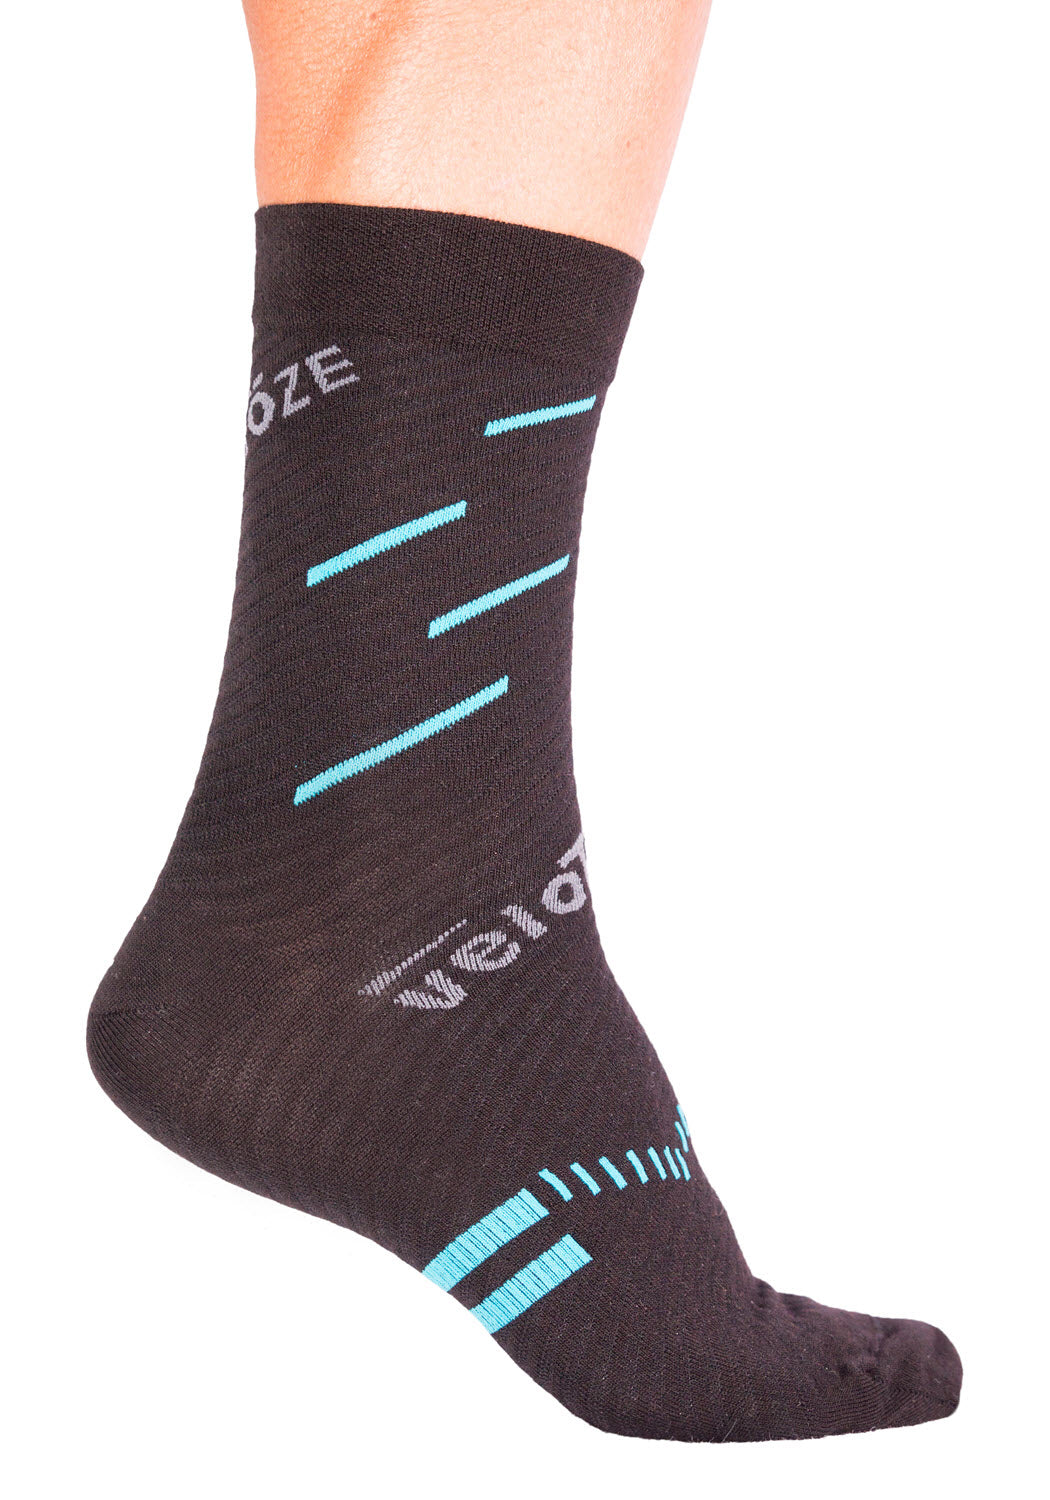 ea6cbe77d97a9 ... veloToze Cycling Sock - Active Compression with Merino Wool ...